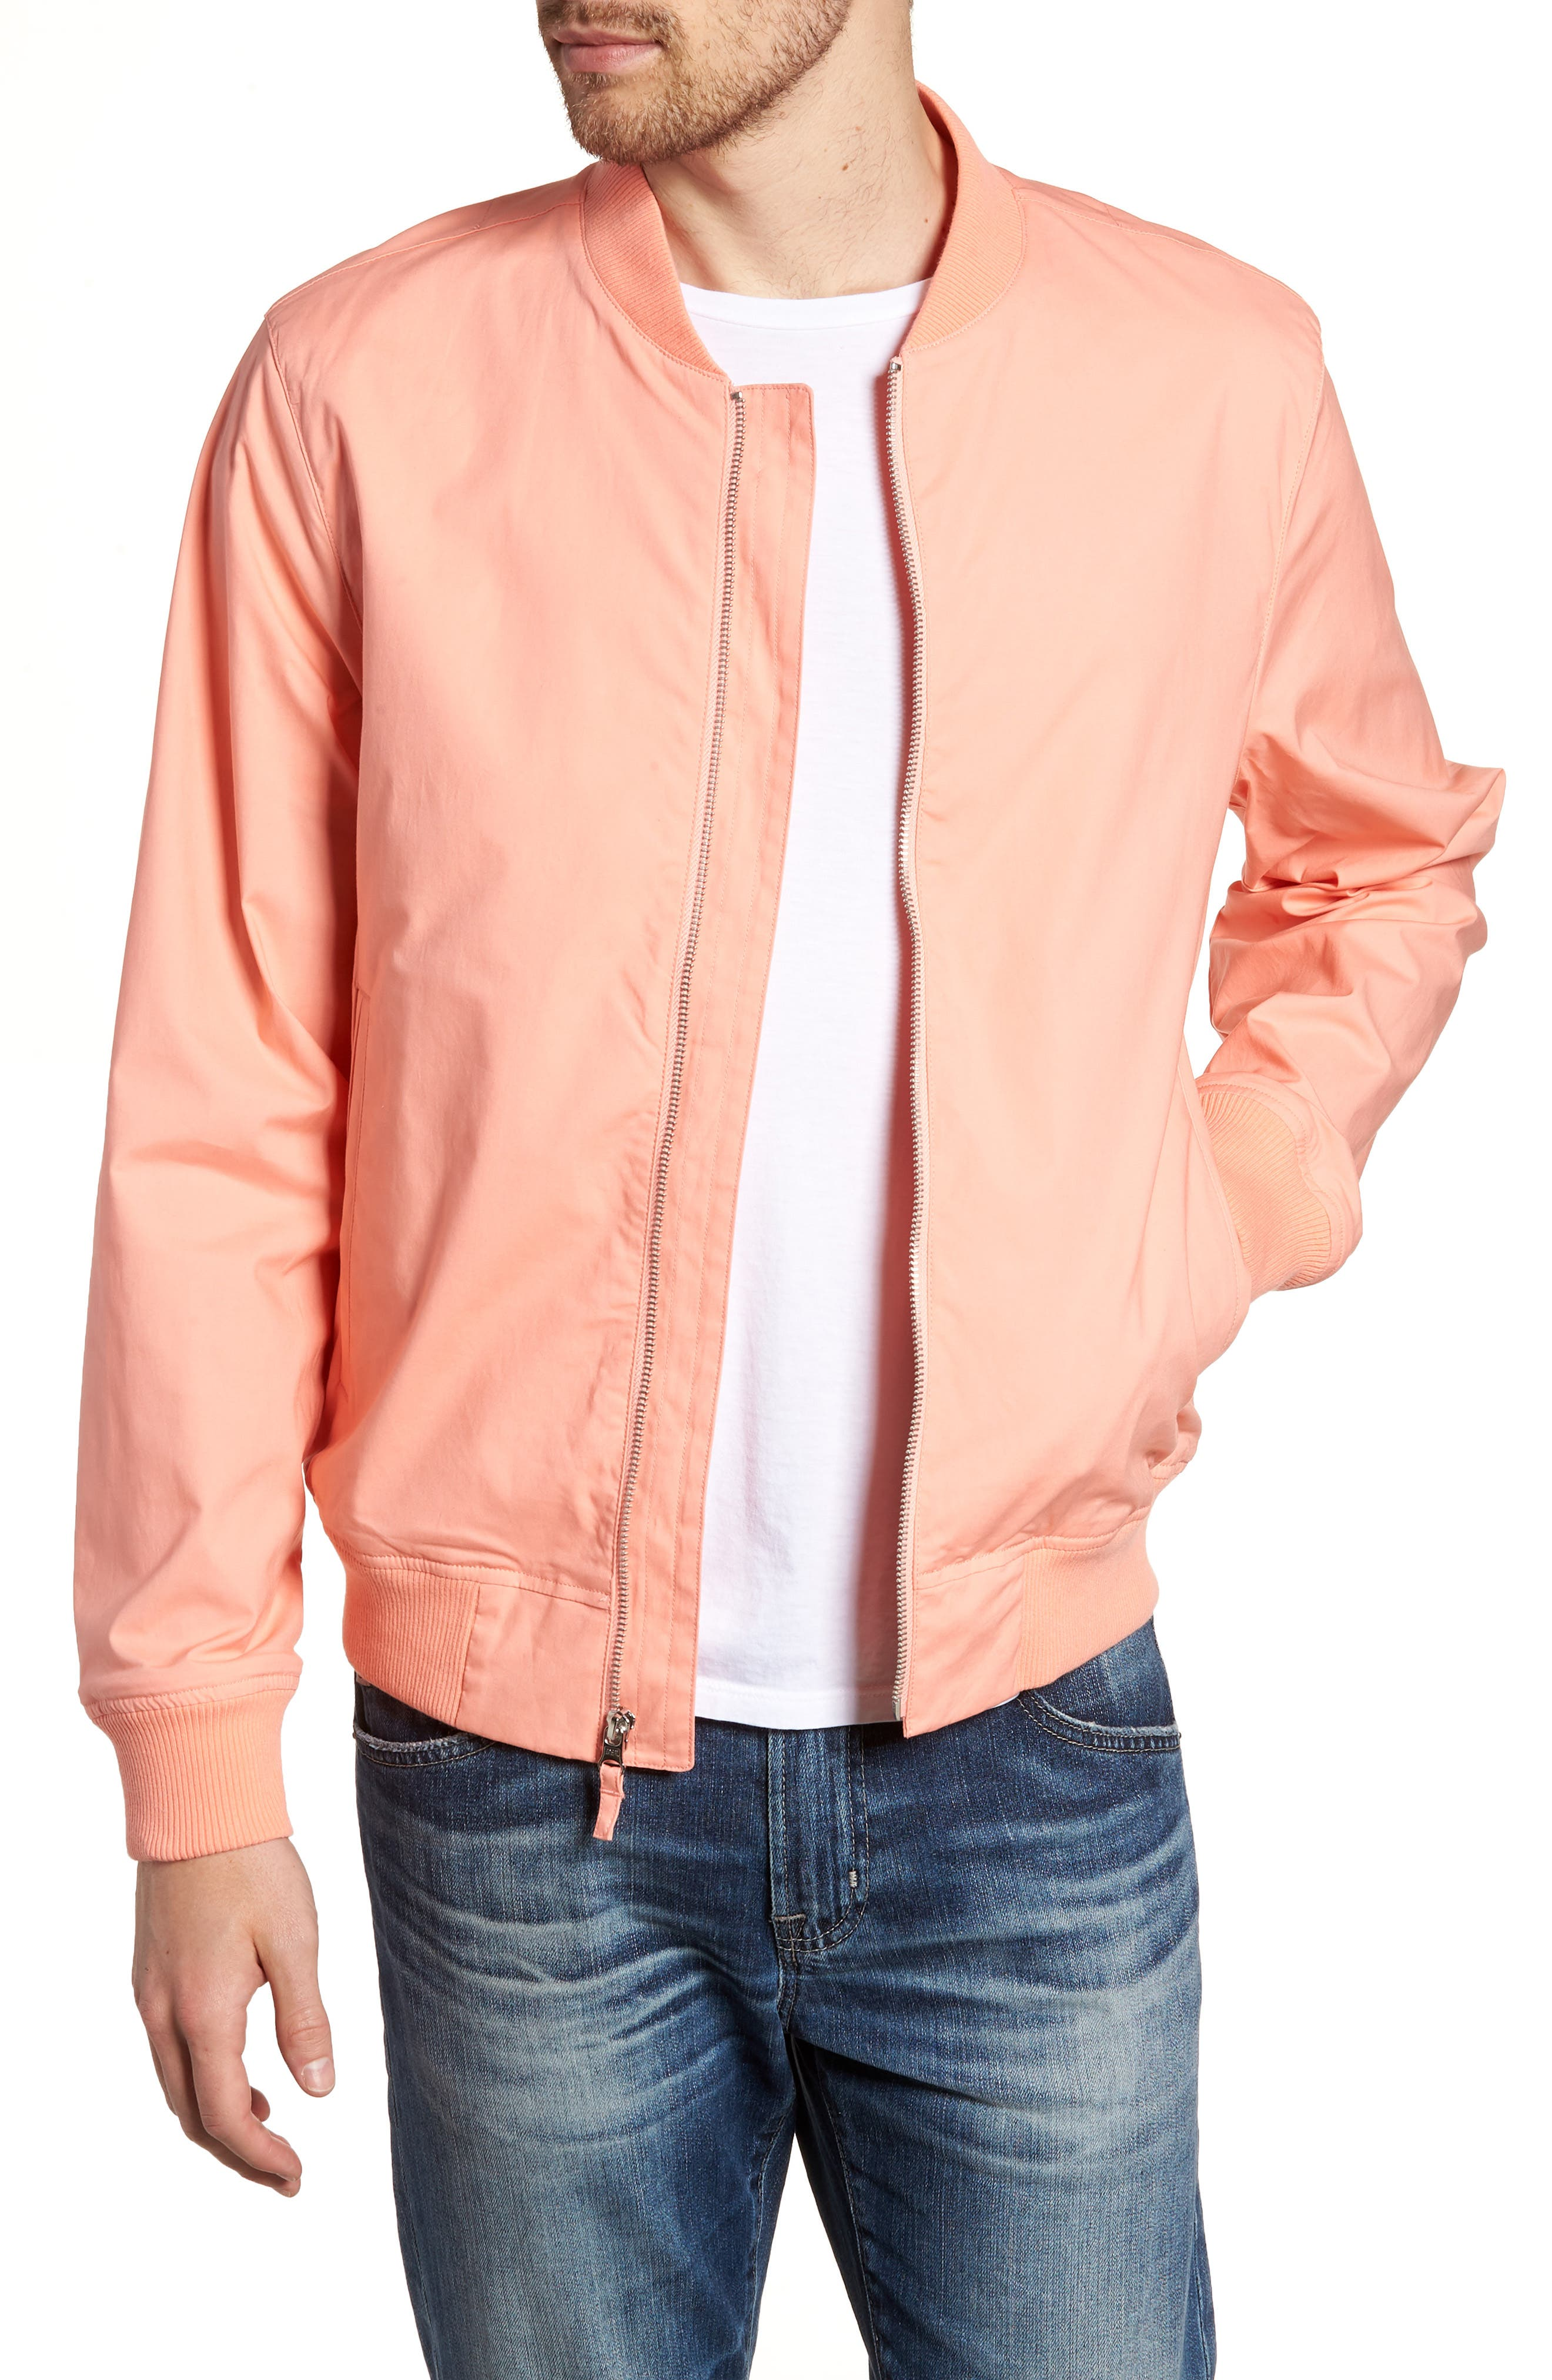 Stretch Bomber Jacket,                             Main thumbnail 1, color,                             Solid - Peach